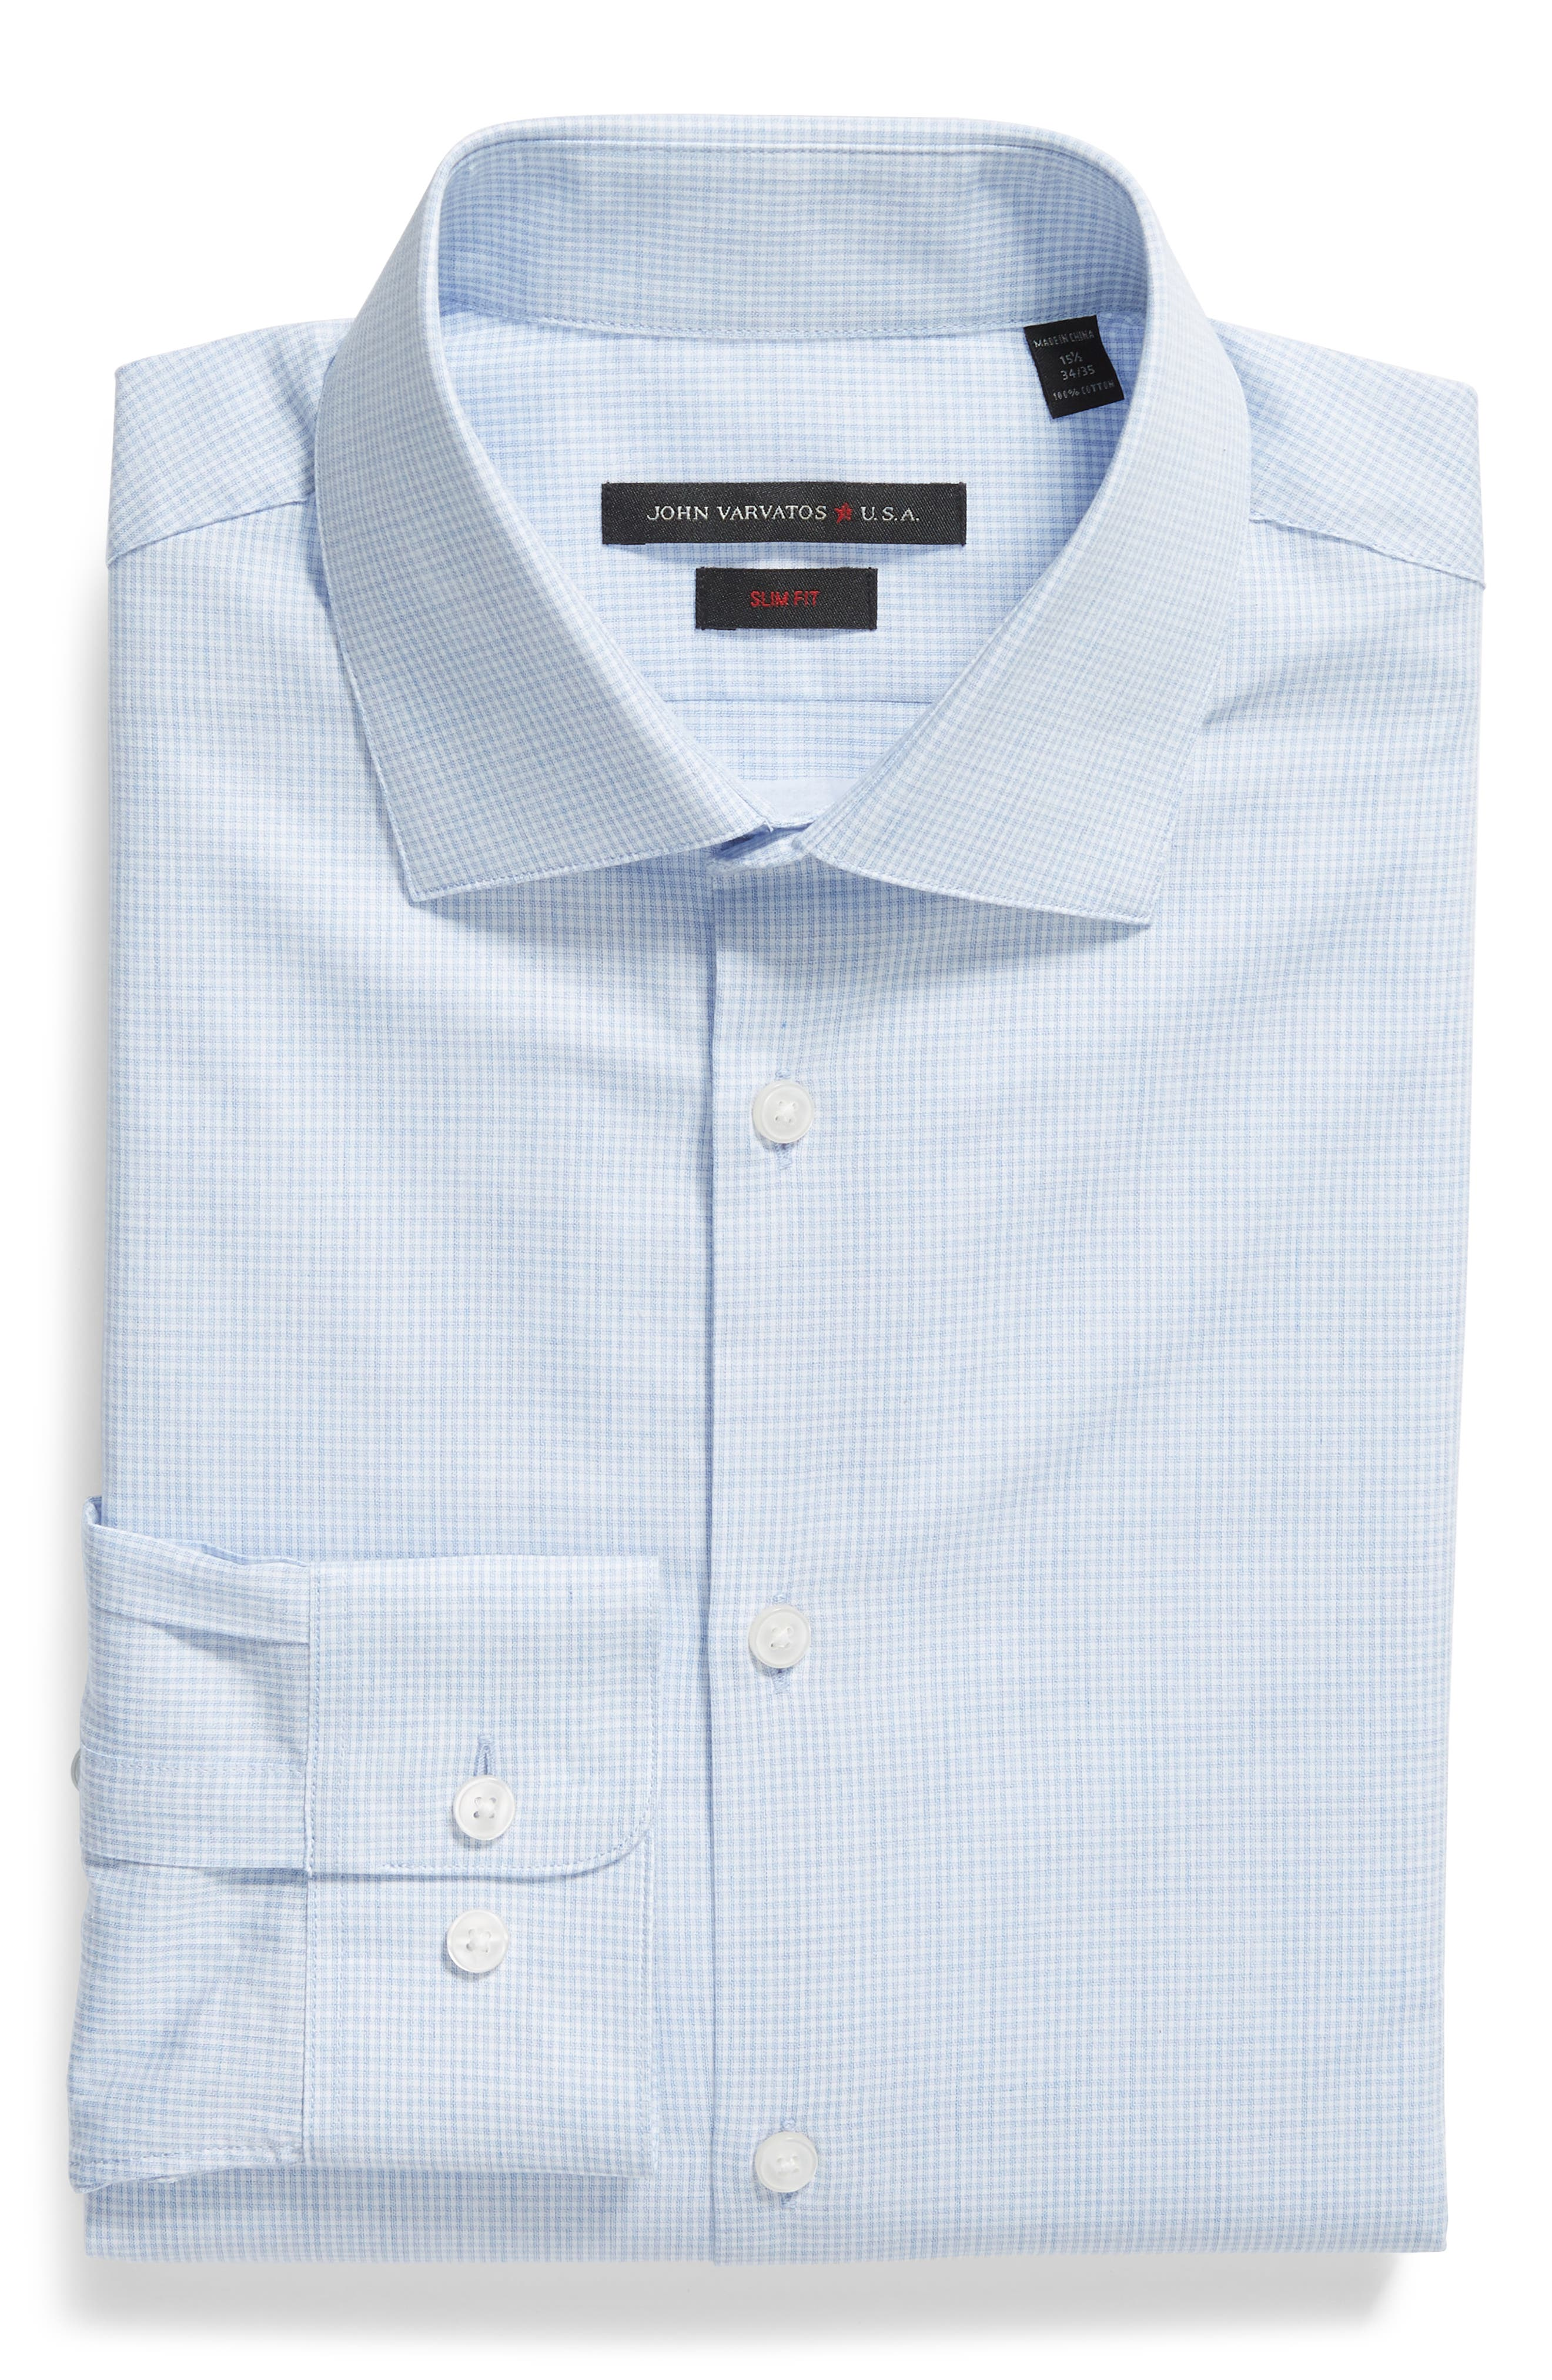 Slim Fit Check Dress Shirt,                             Alternate thumbnail 5, color,                             LIGHT BLUE